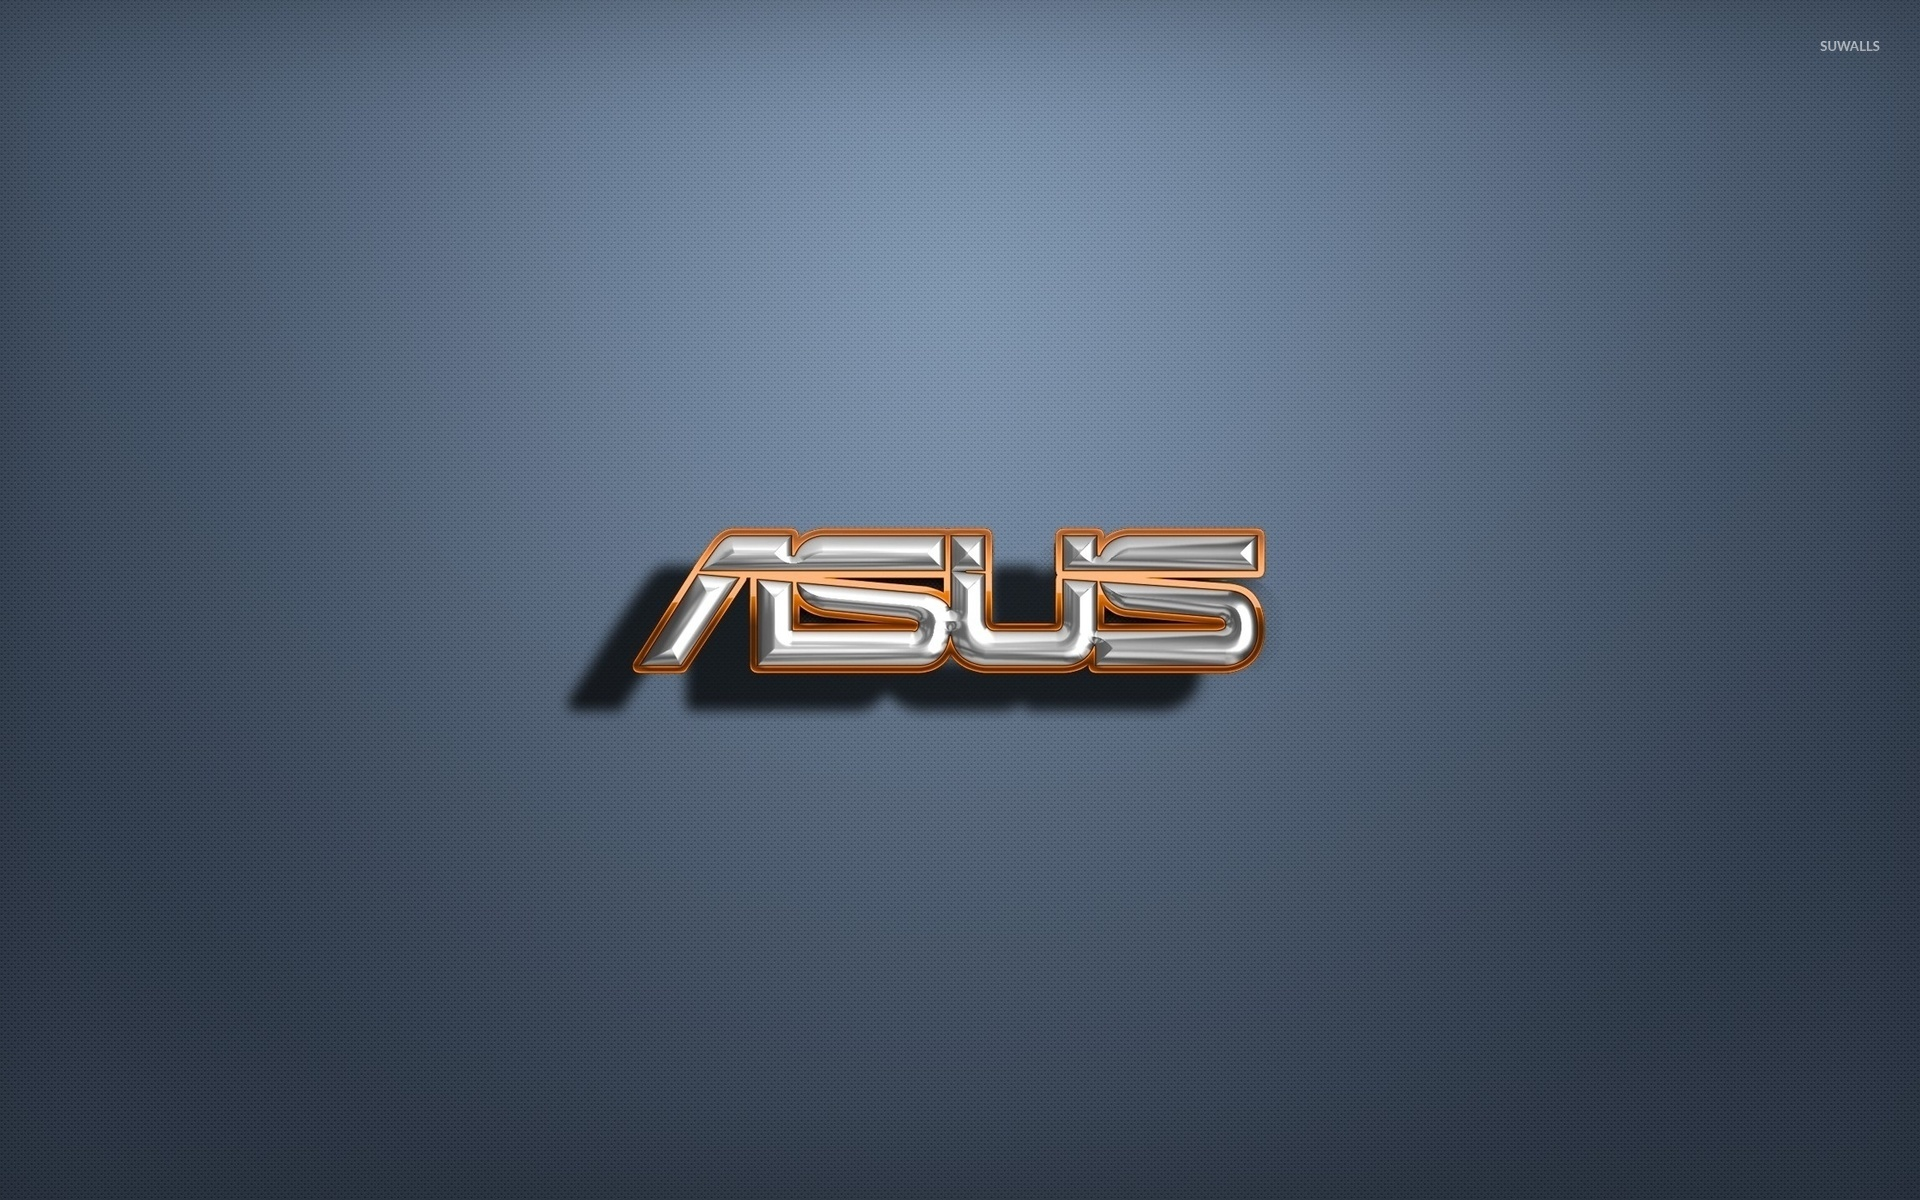 3d Leaf Wallpapers For Mobile Asus Logo Wallpaper Computer Wallpapers 32564